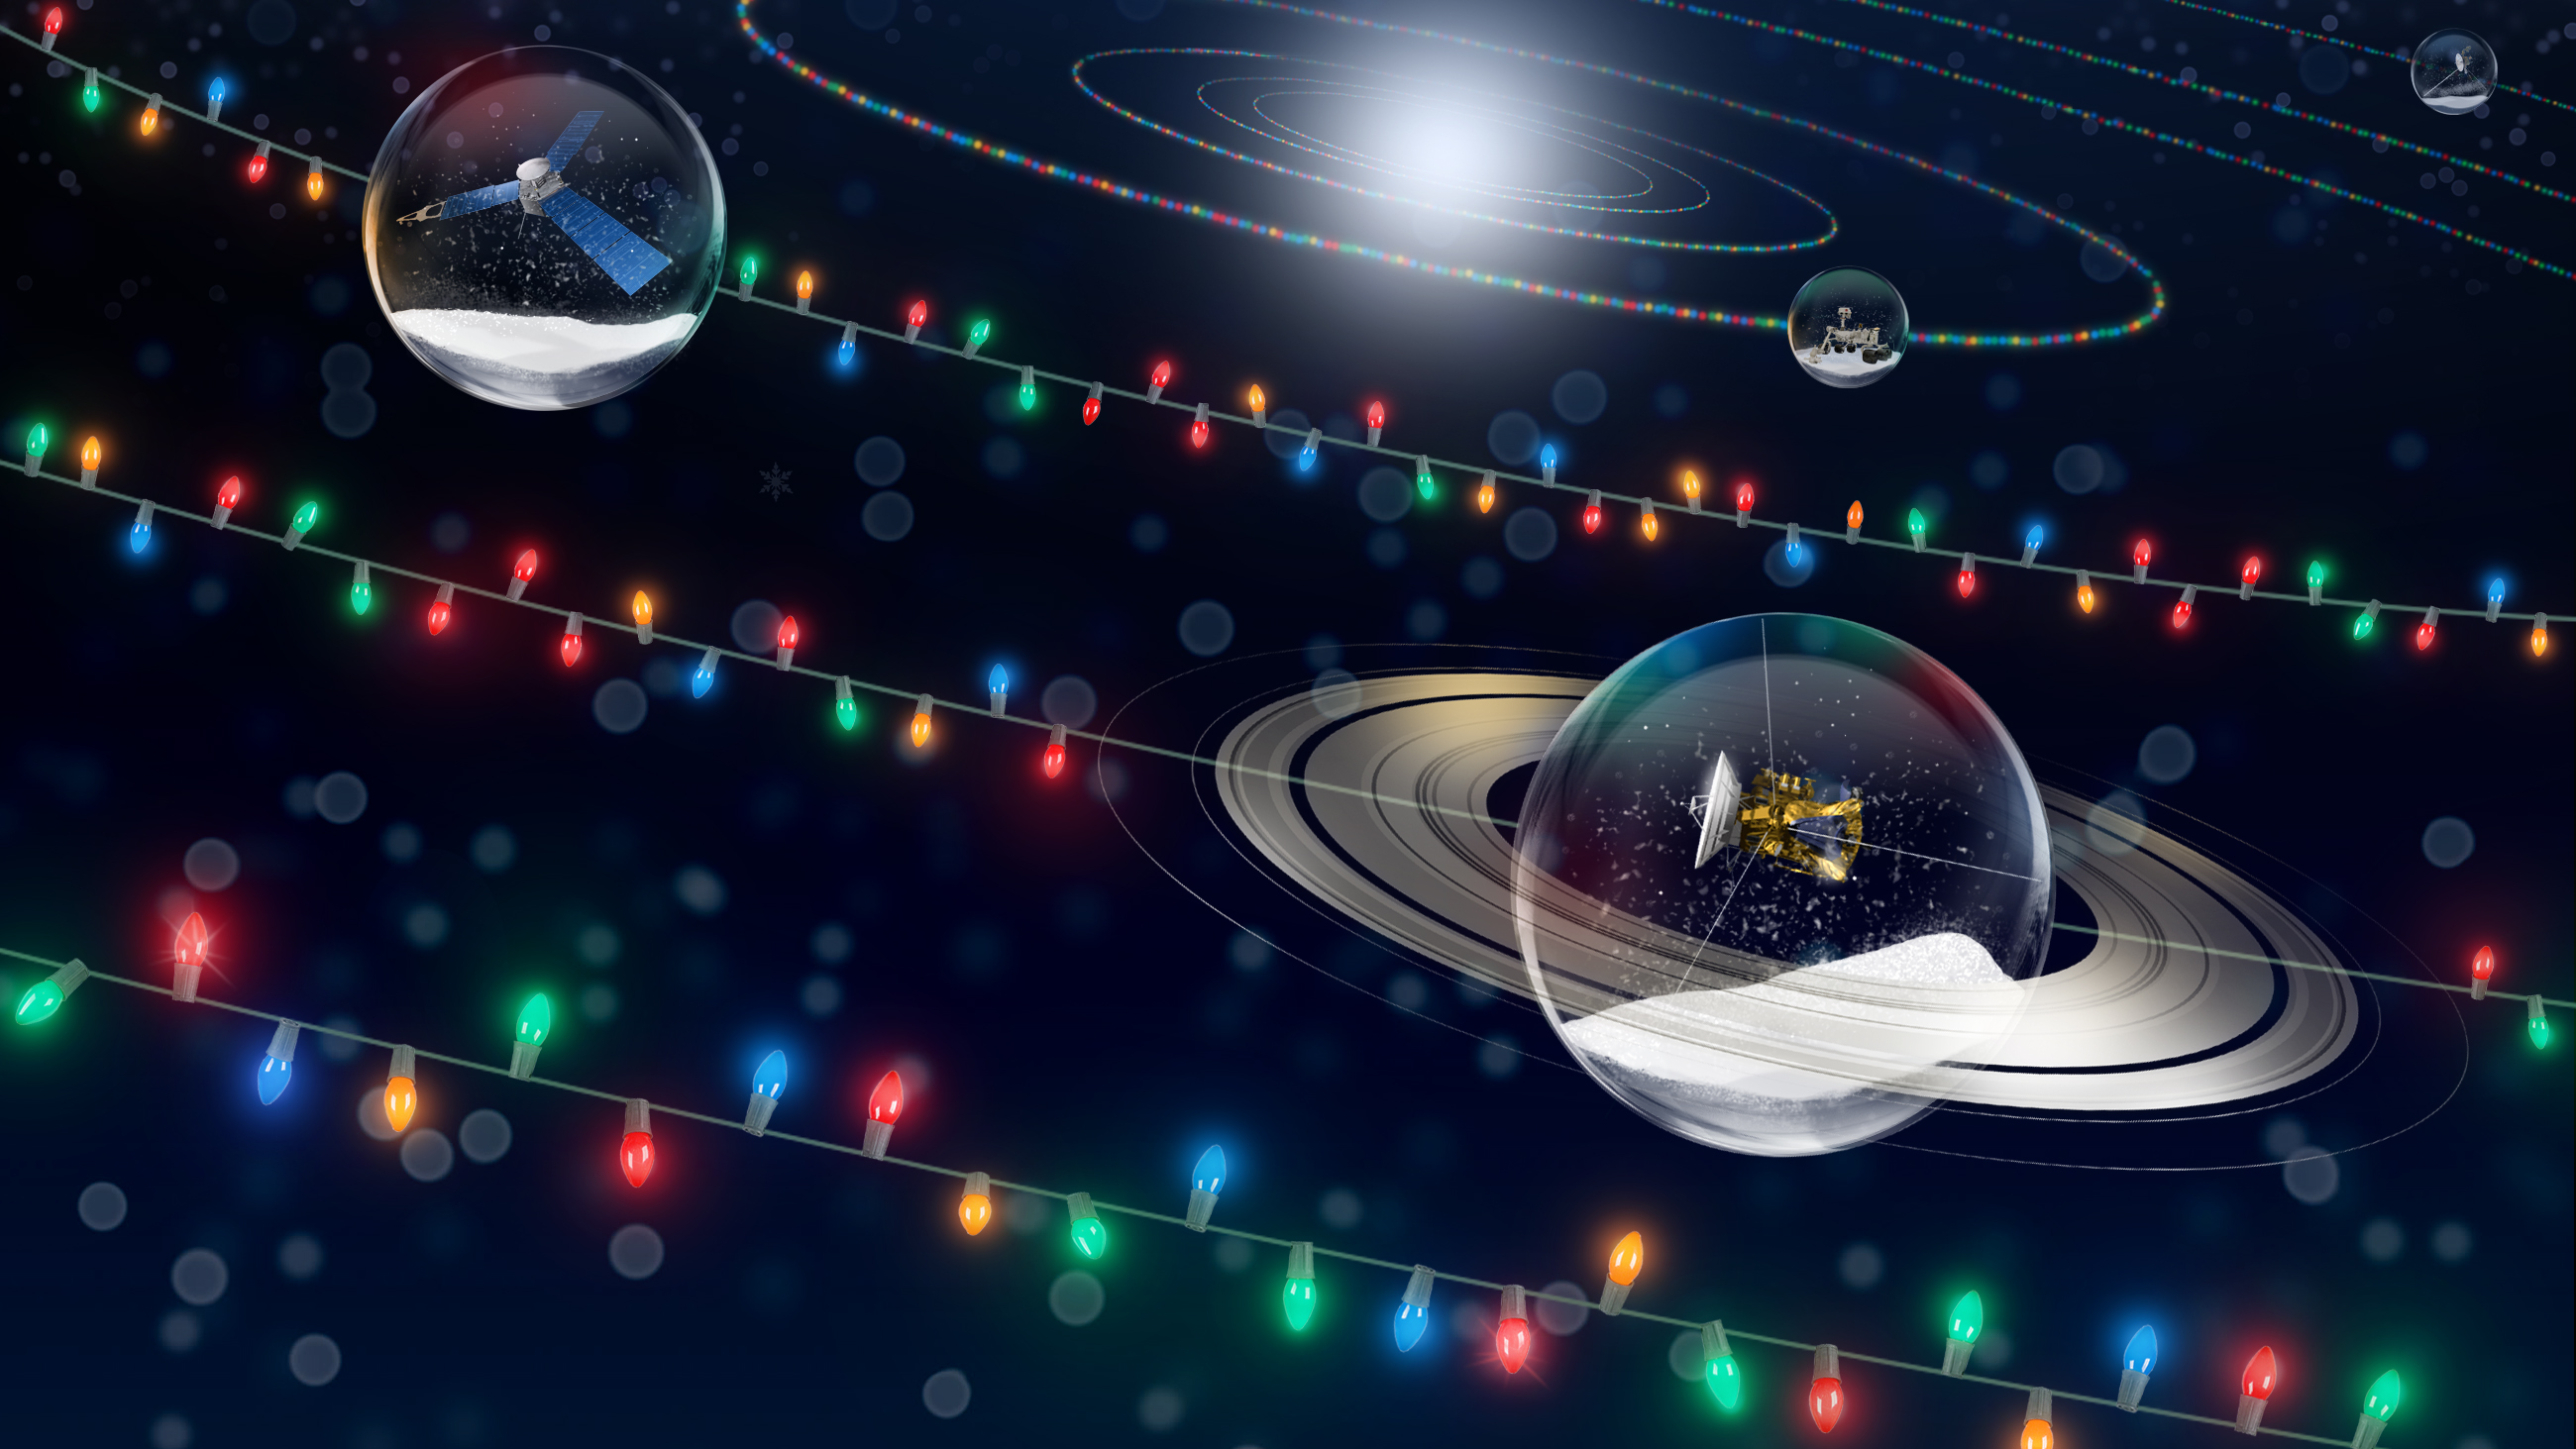 Illustration of holiday lights and spacecraft in snowglobes.